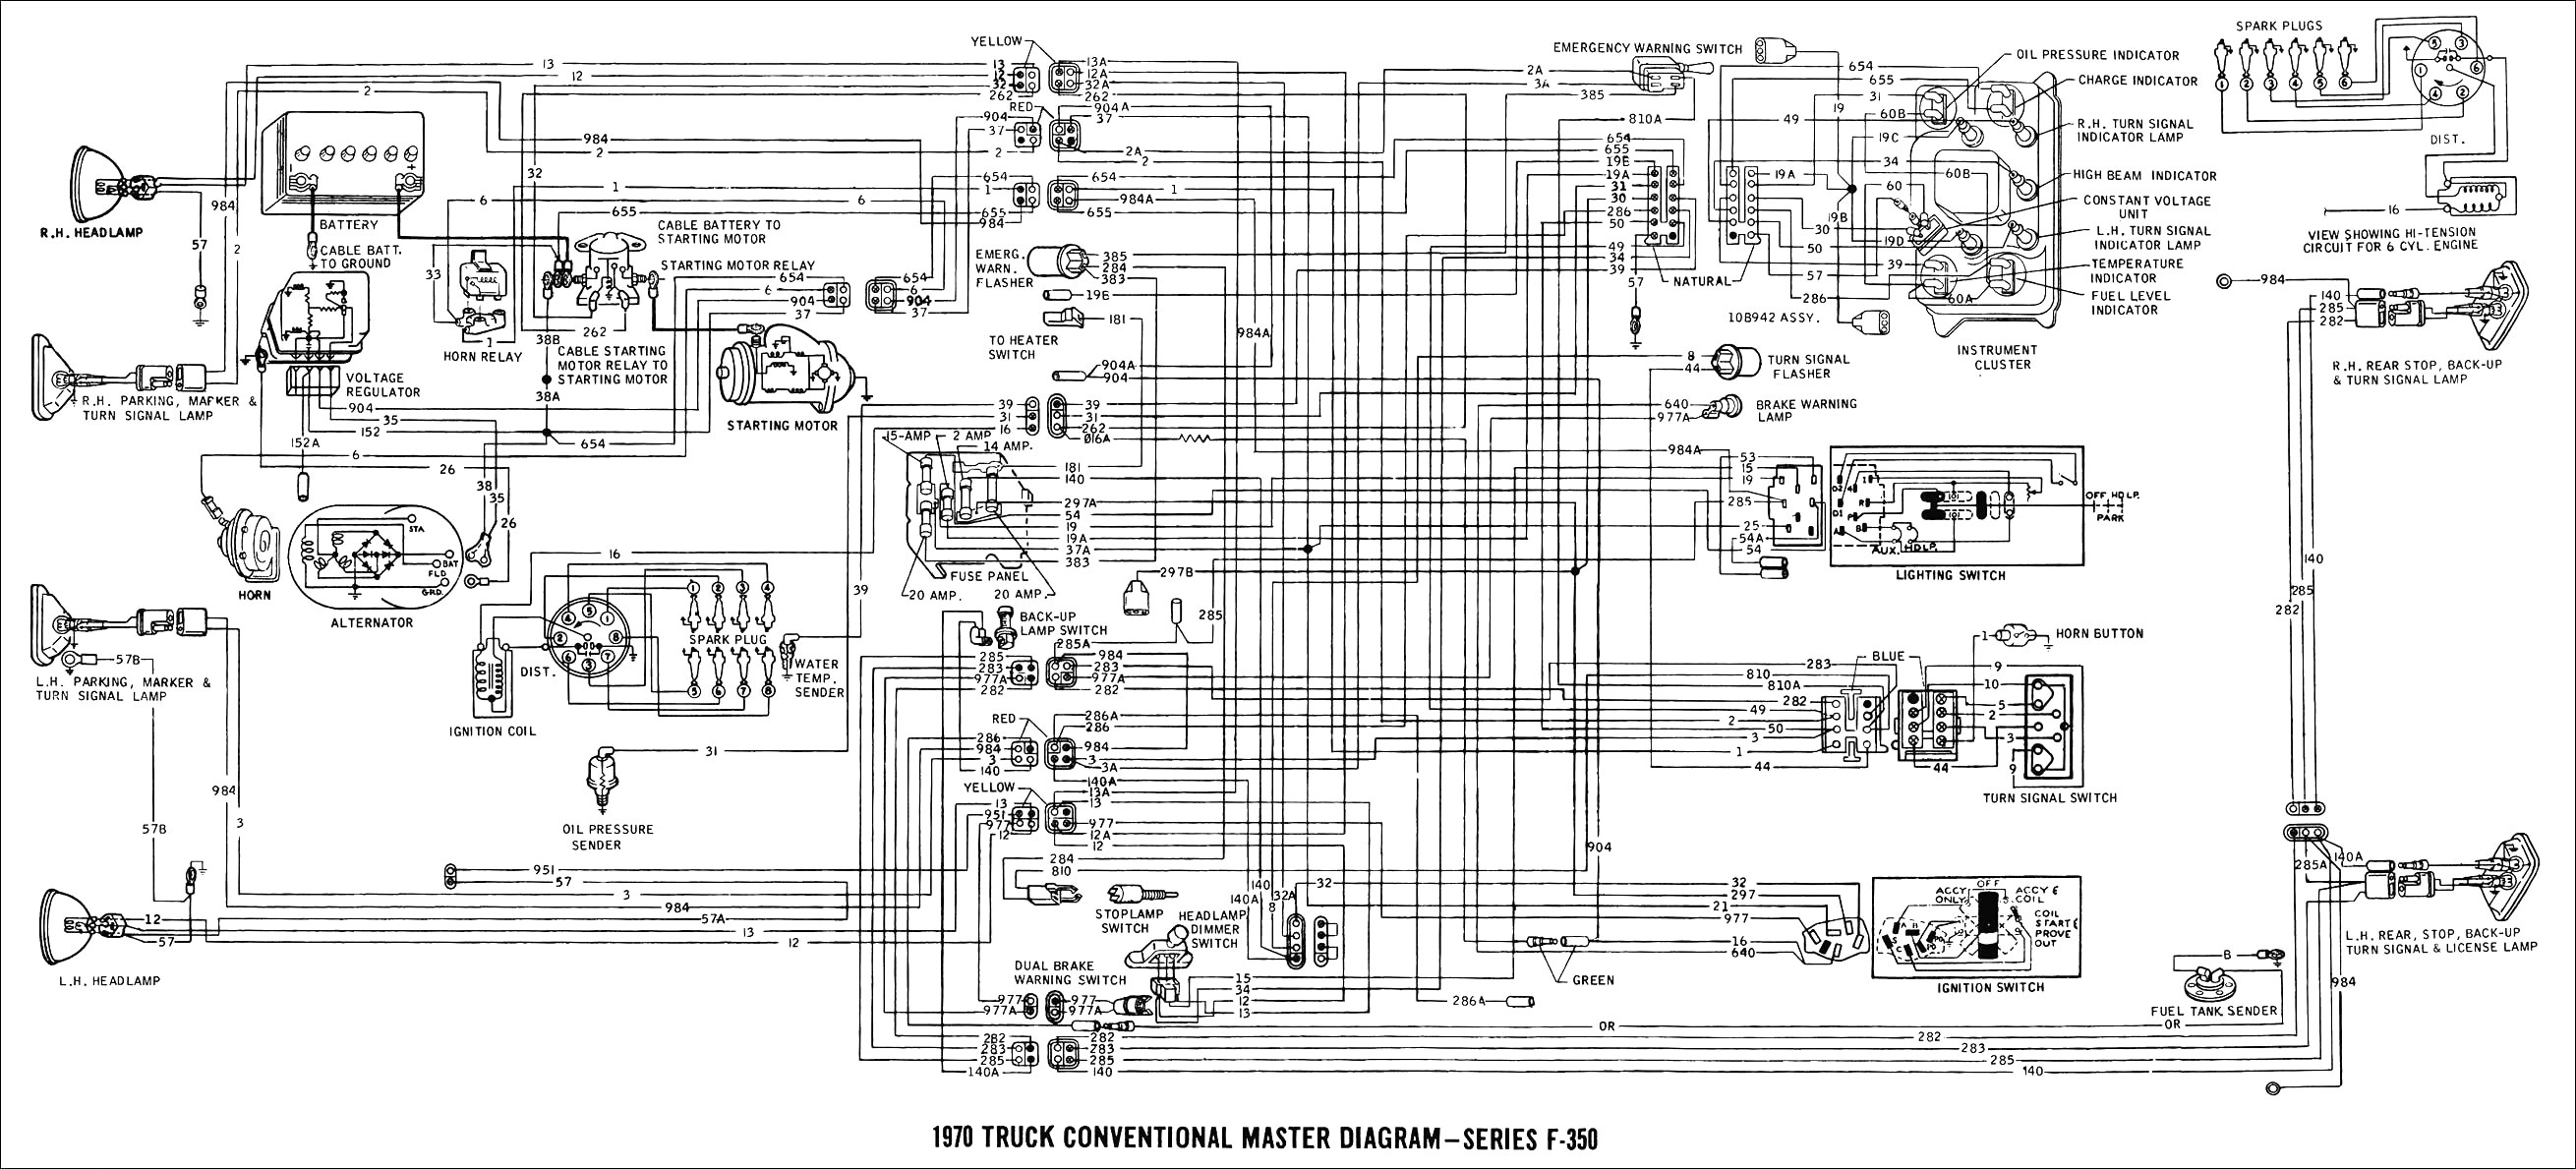 Mercedes Wiring Diagram 810 Library Of 1974 Benz Diagrams Car 18 Free Schematic And For Rh Detoxicrecenze Com